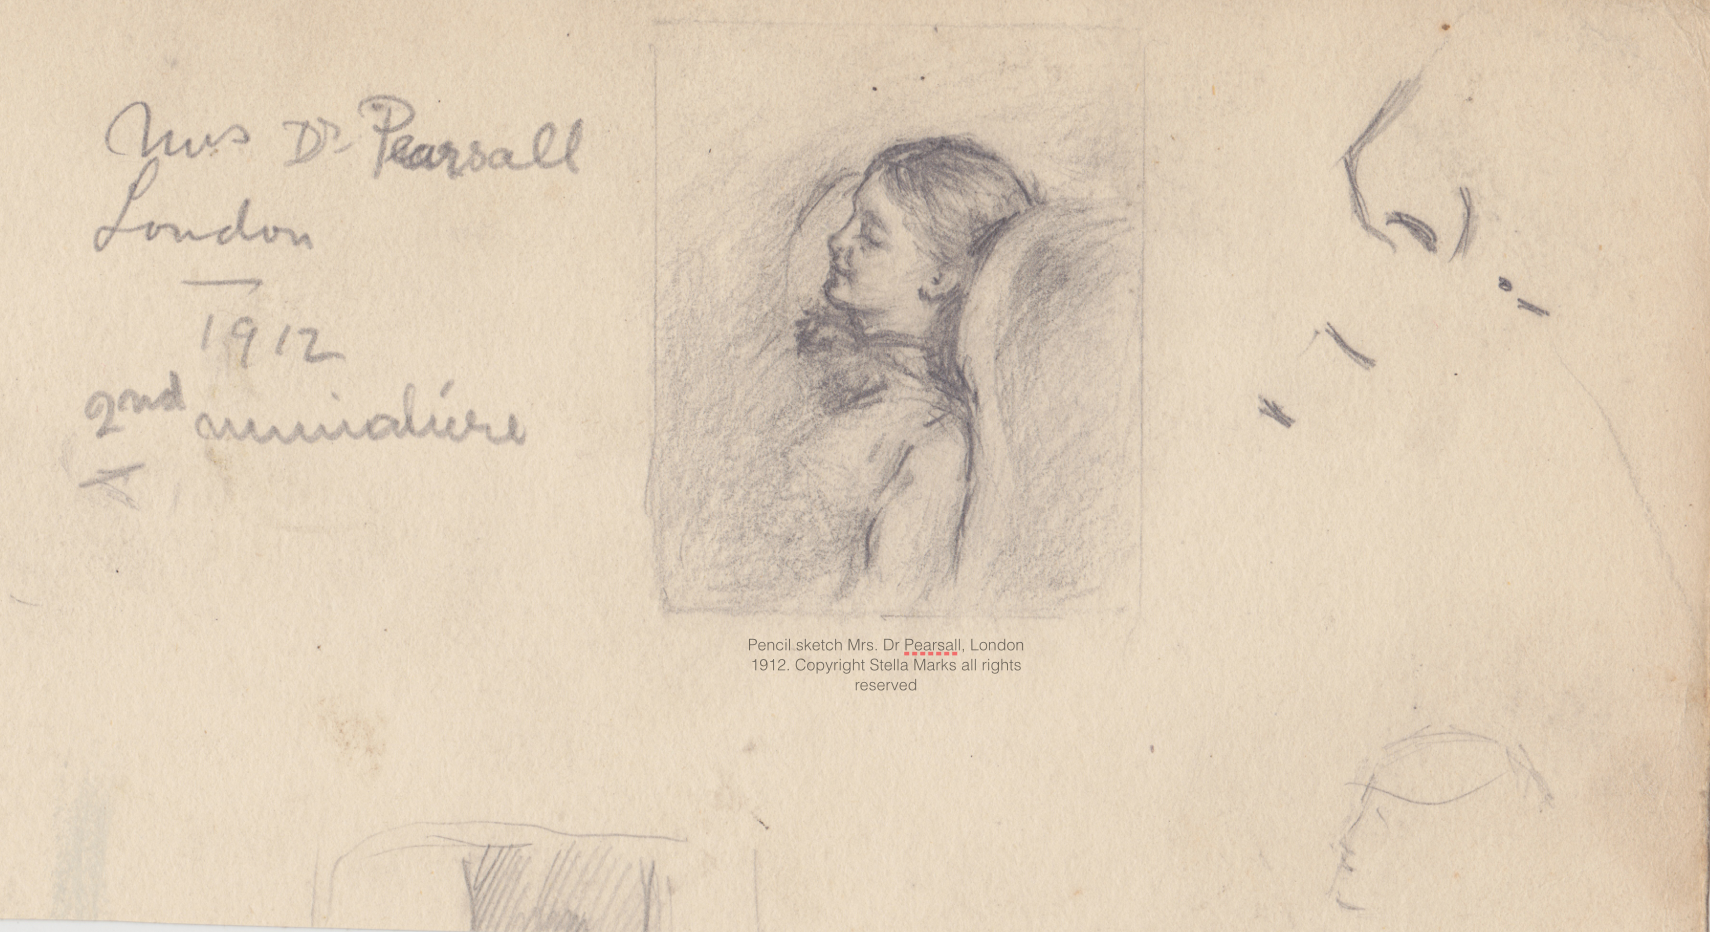 Pencil sketch for a miniature by Stella Marks of Mrs. Dr Pearsall, London 1912. Copyright Stella Marks' Estate all rights reserved. Private Collection.